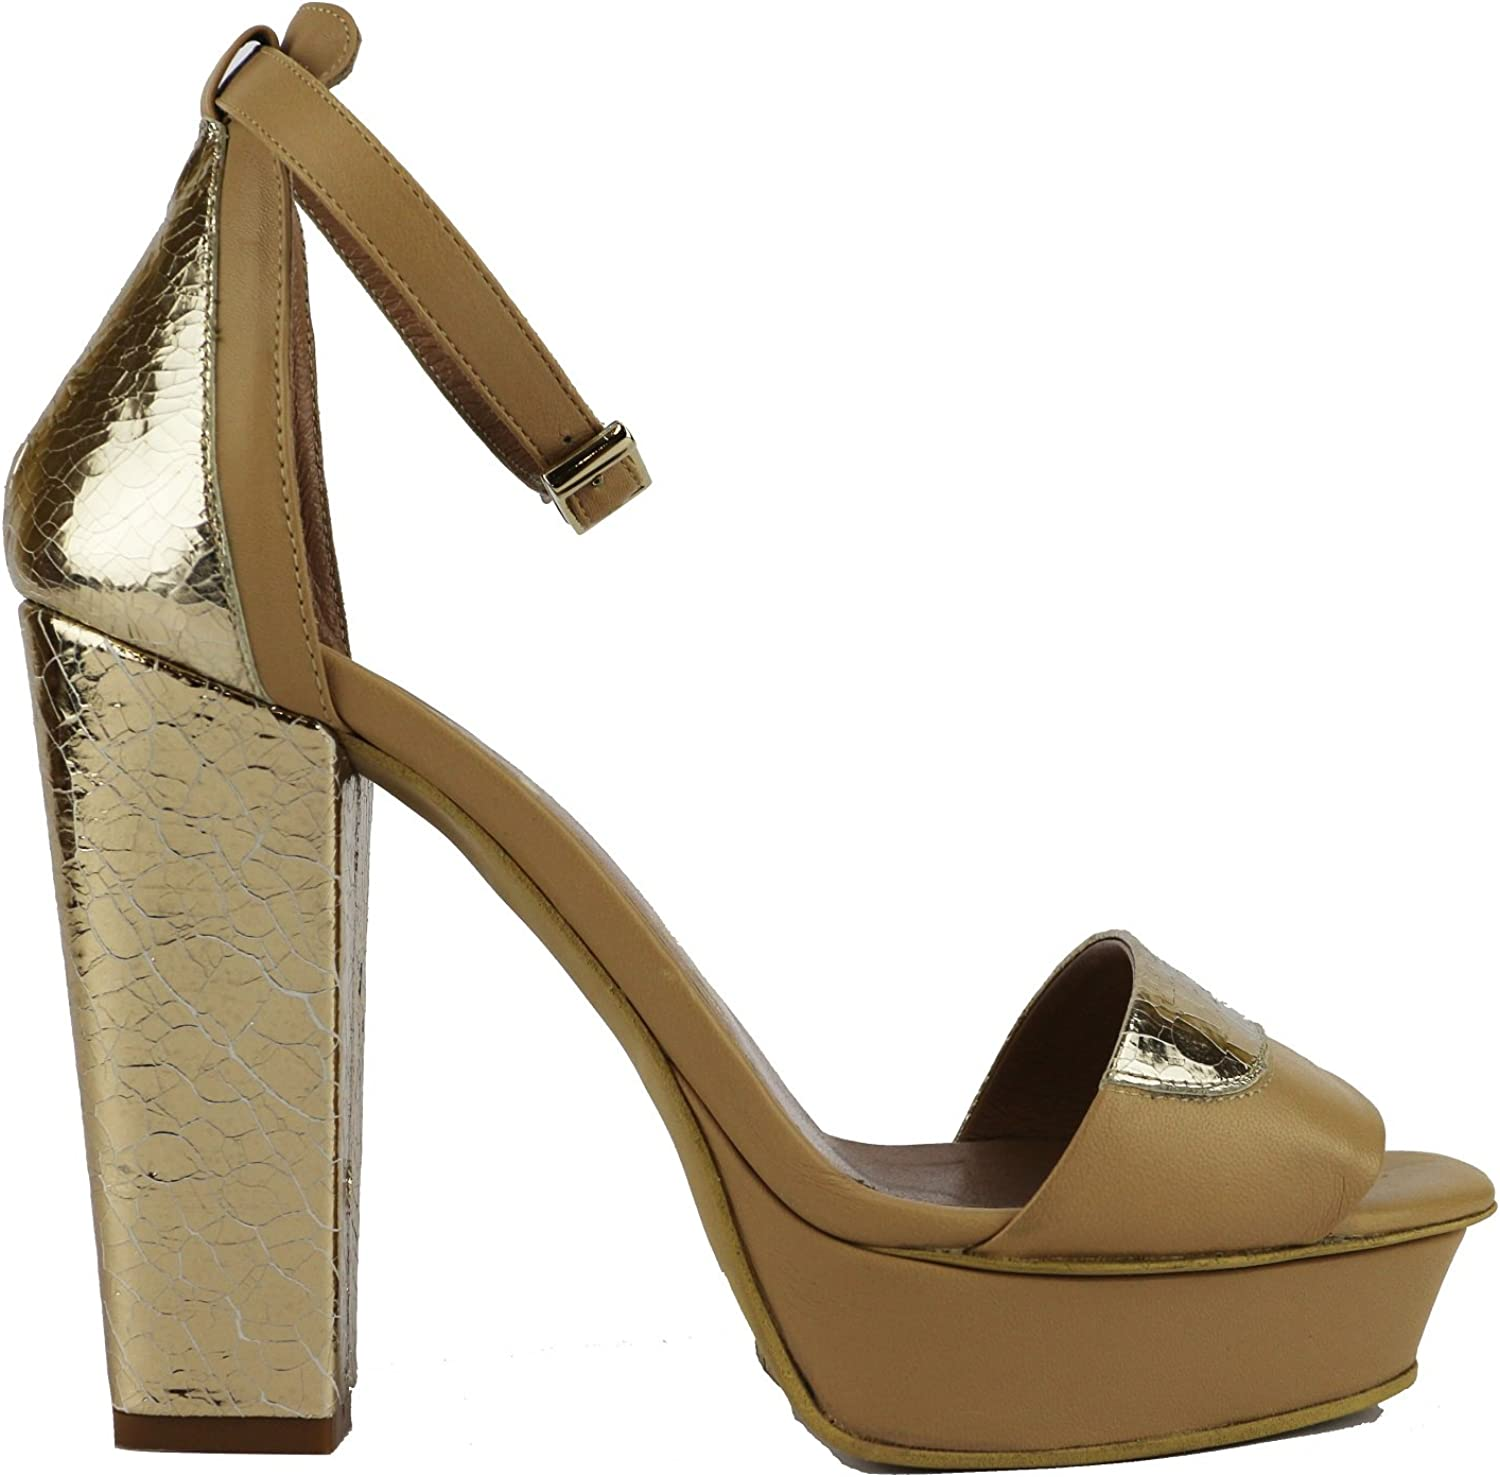 MY COCHO Sandals Womens Leather Beige